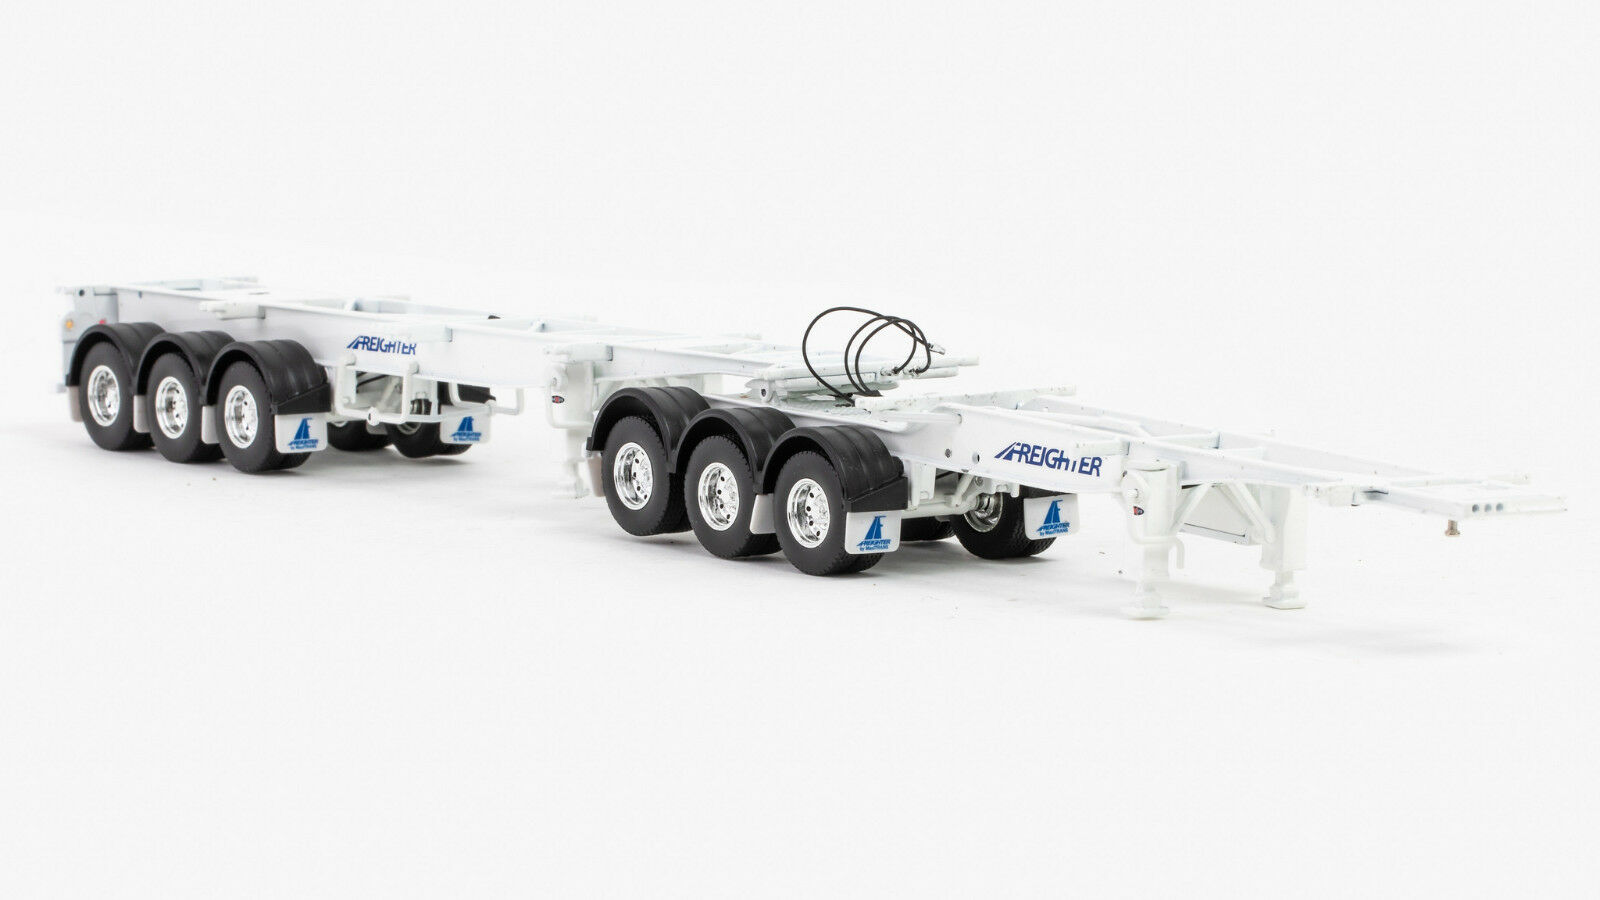 Freighter -Skel B-Double Trailer Set -White 1 50 Scale By Drake  ZT09153